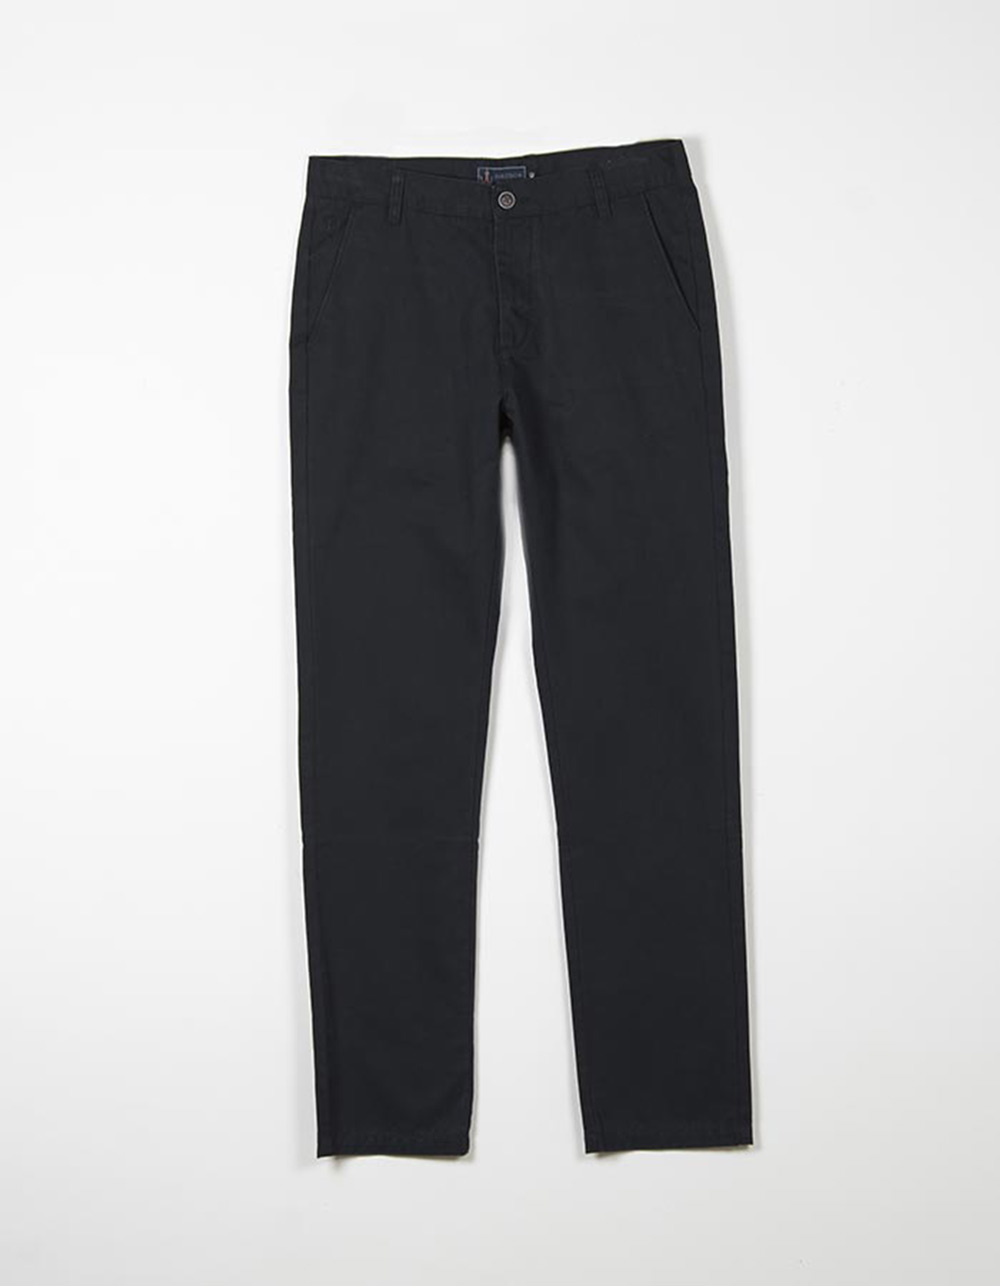 Navy blue chinos trousers